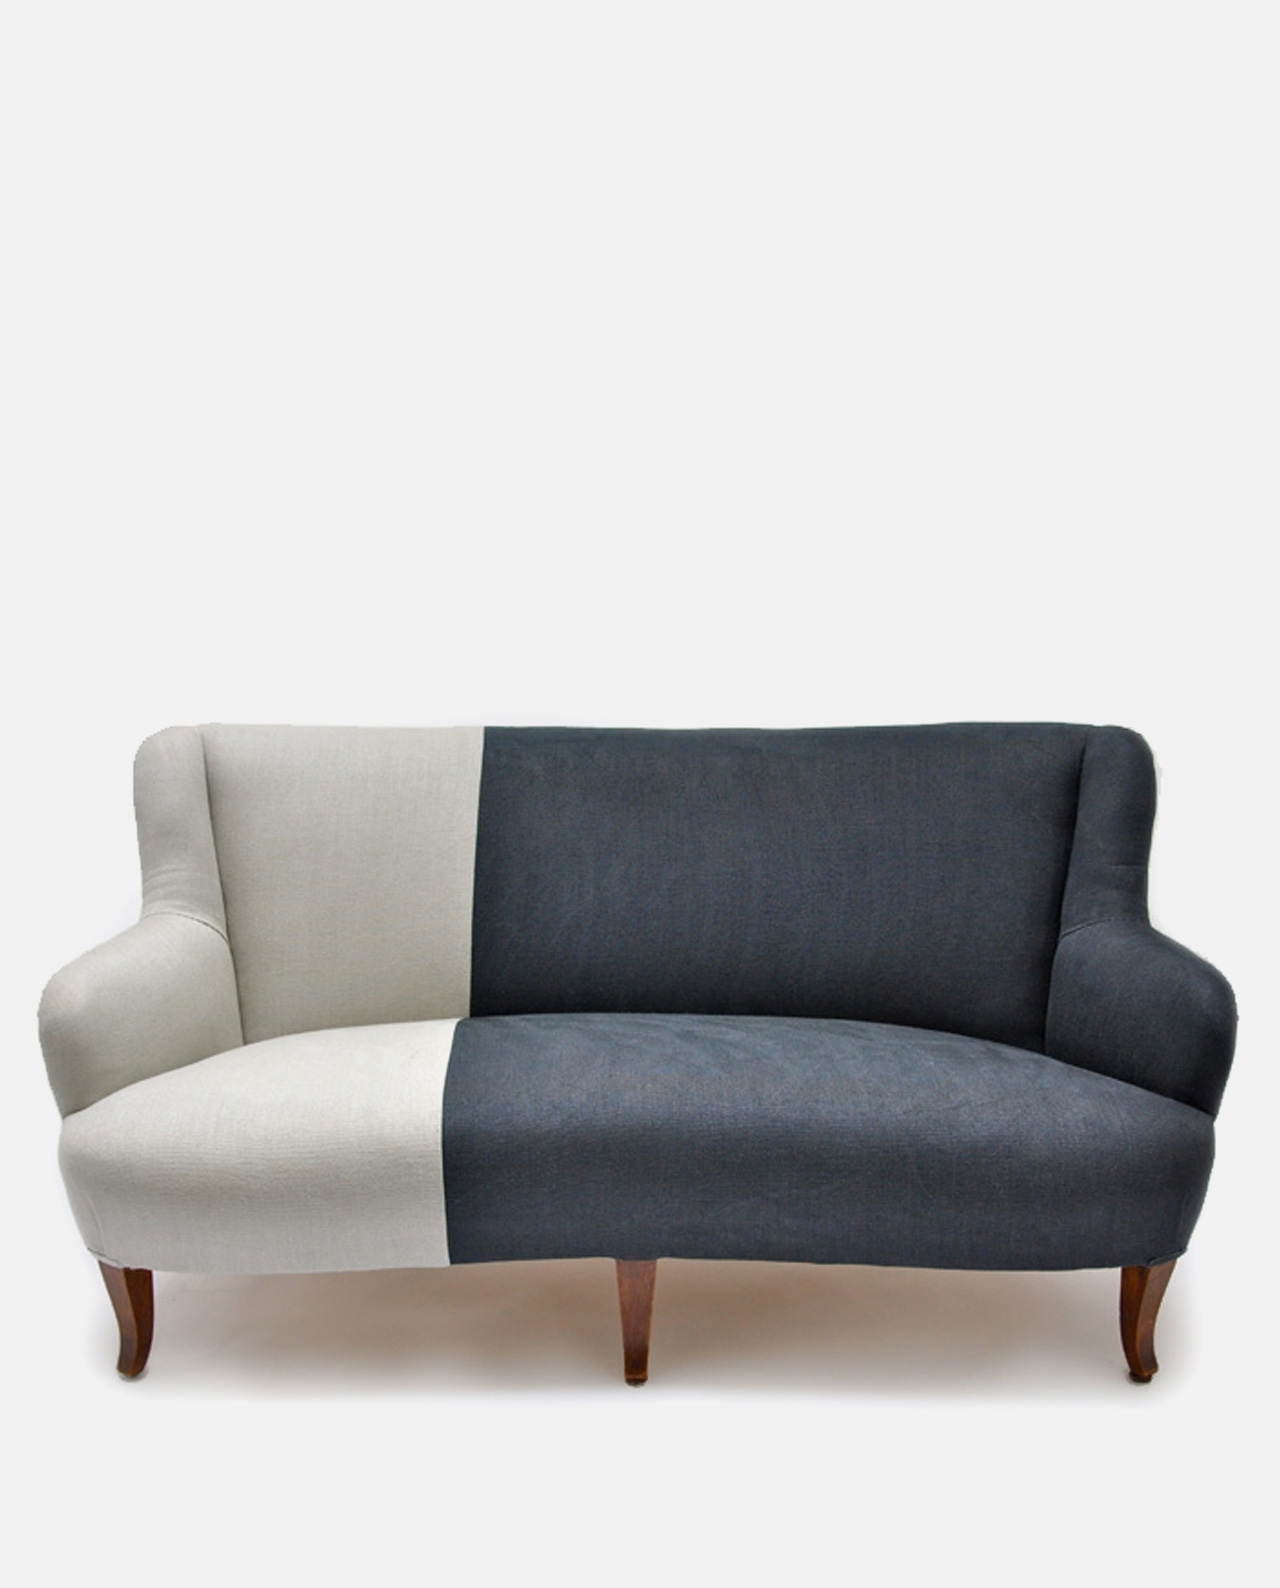 Ines Cole With Most Up To Date Vintage Sofas (View 9 of 20)